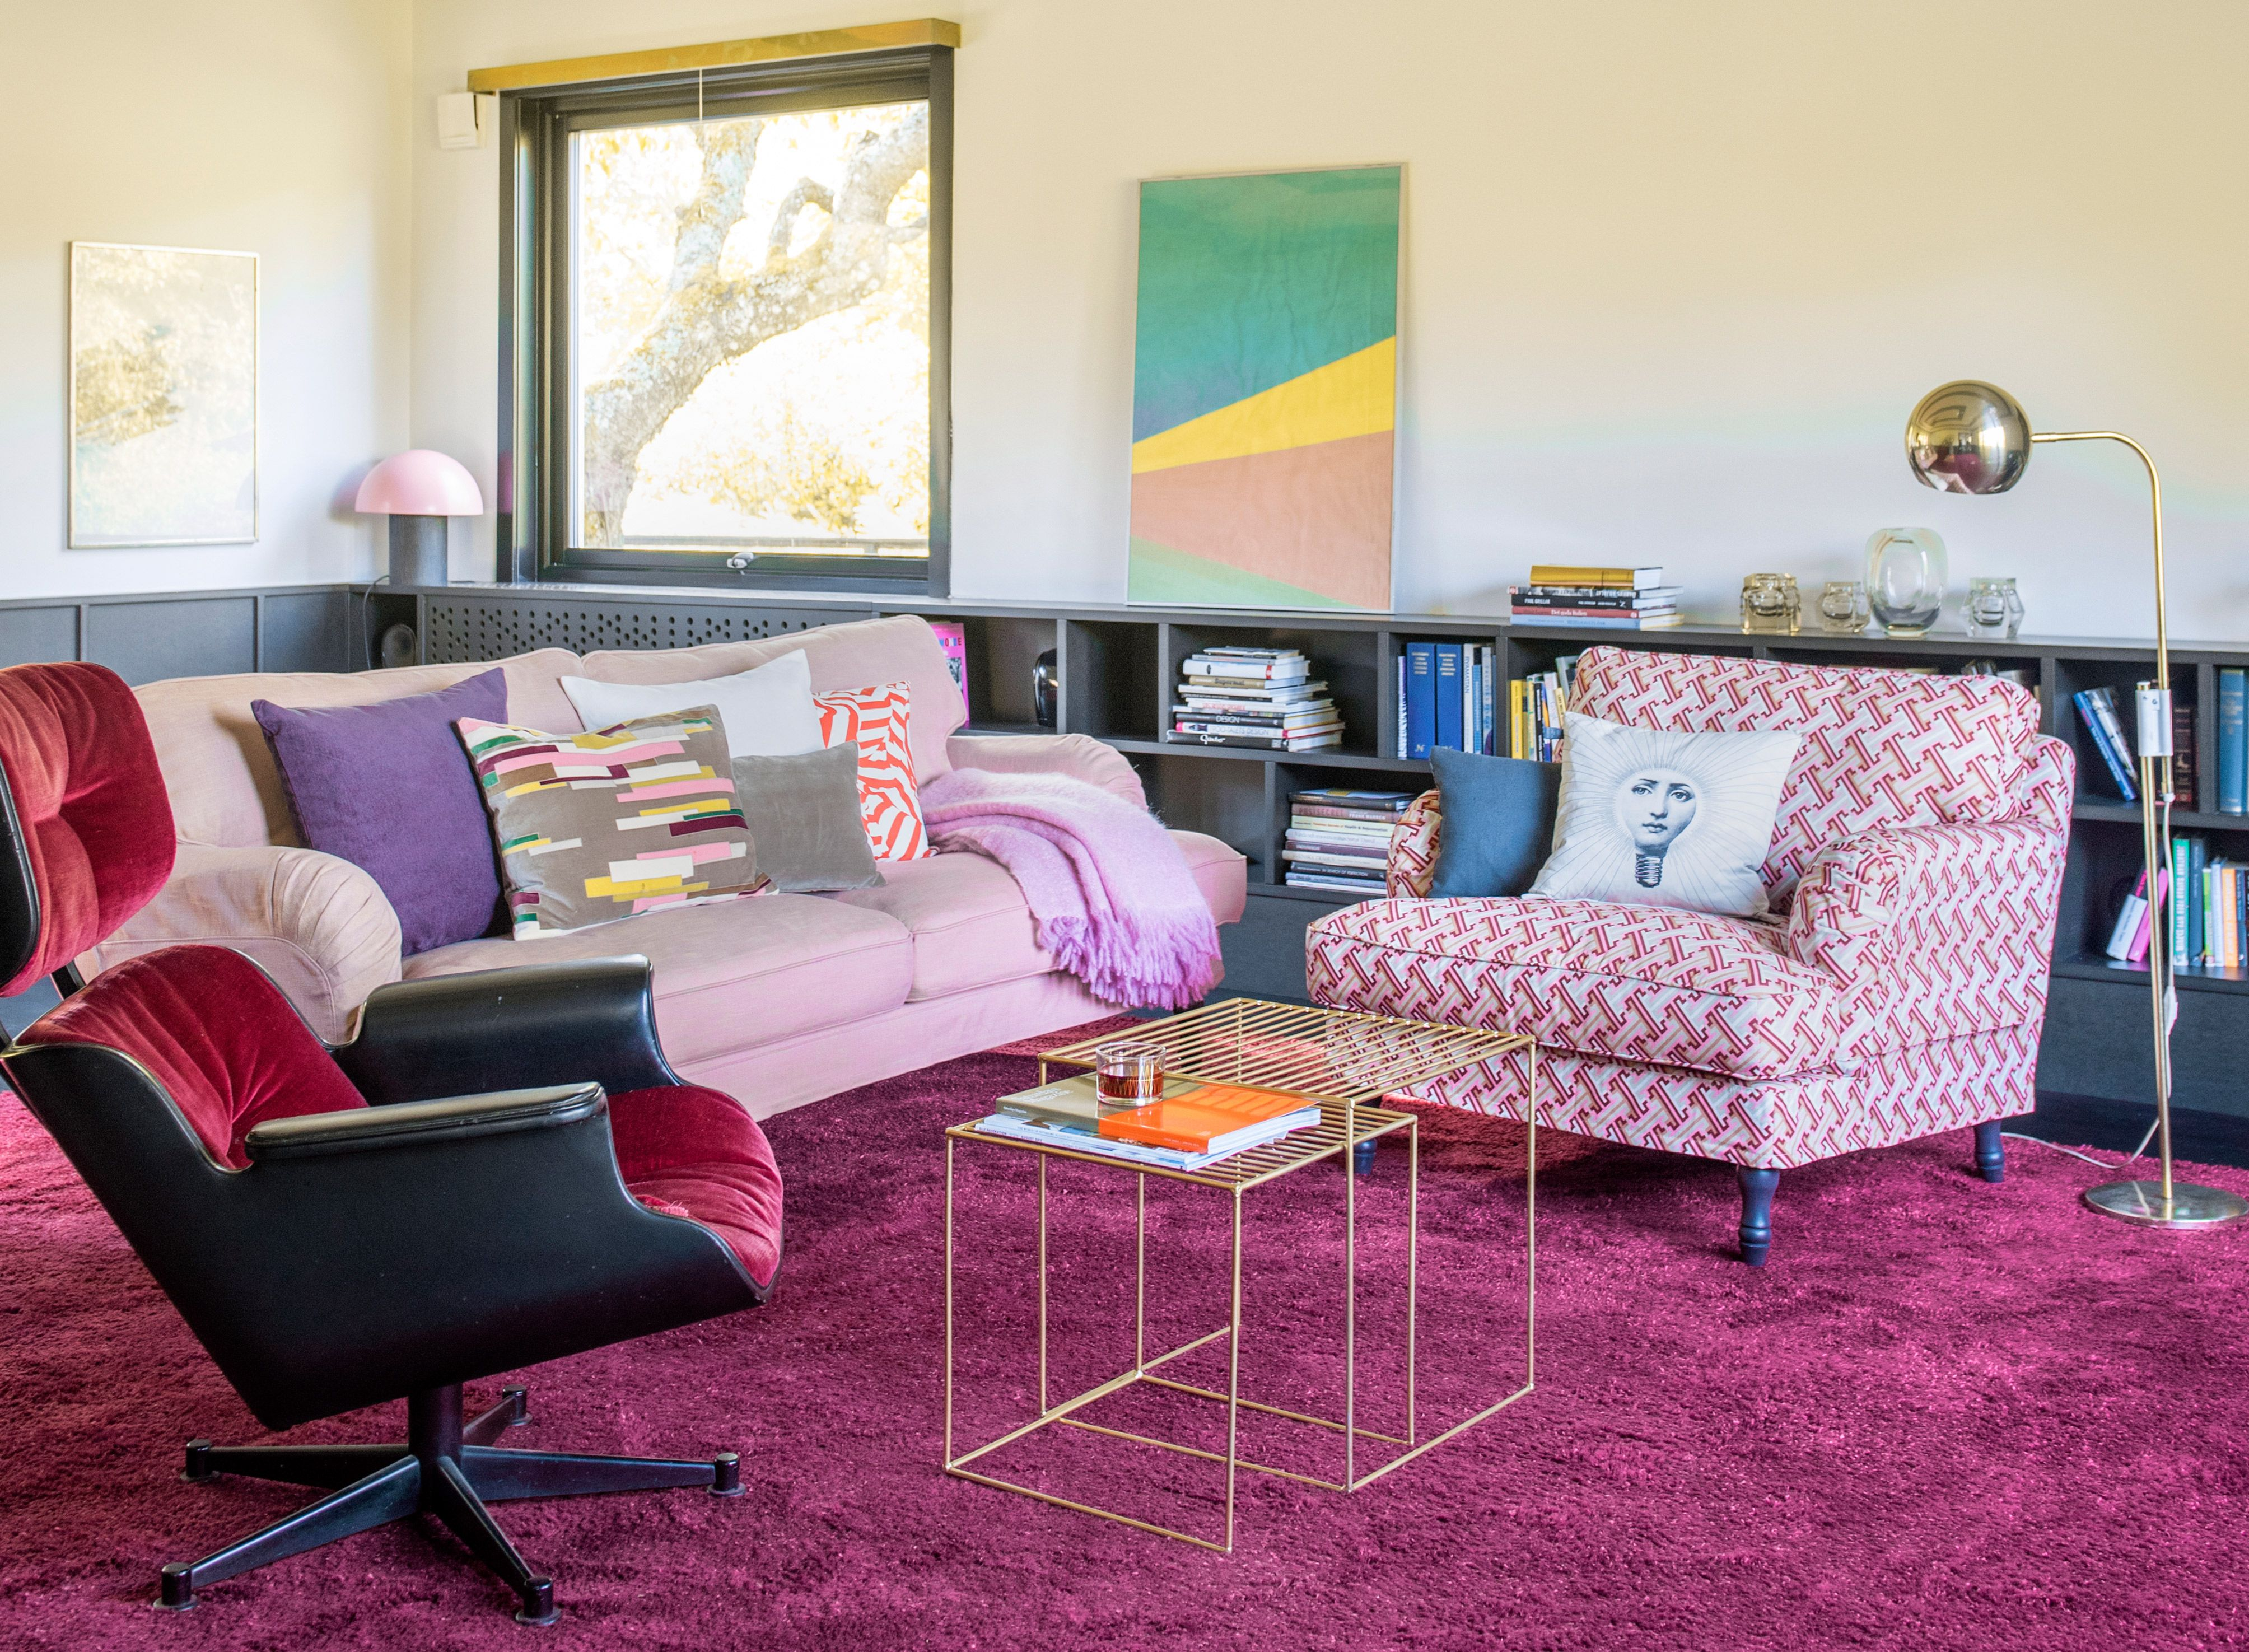 That velvet Eames chair though eclectic pink living room